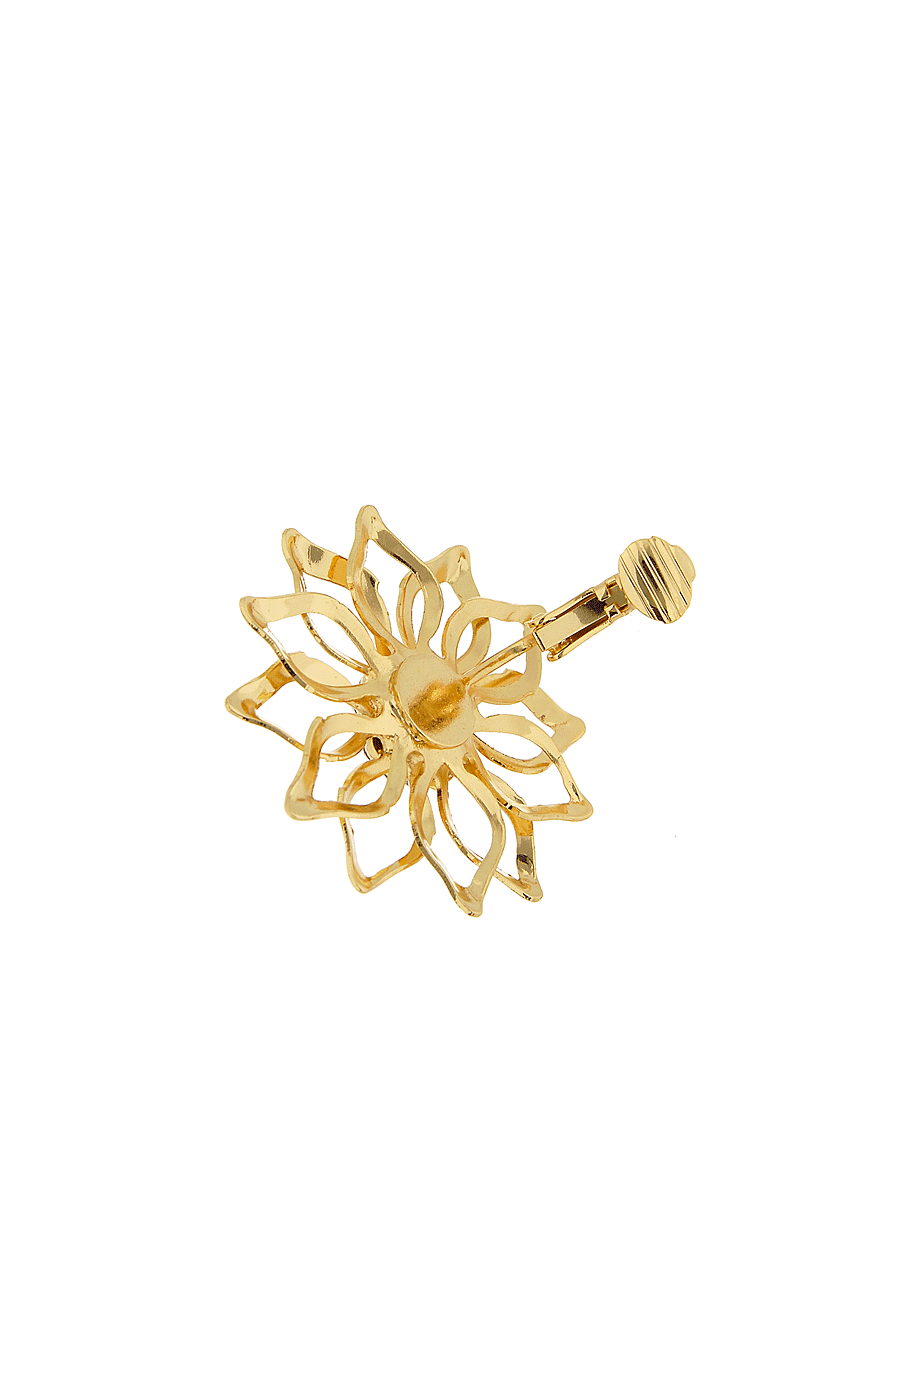 LK DESIGNS GOLD FLOWER Clip Earrings – PRET-A-BEAUTE.COM